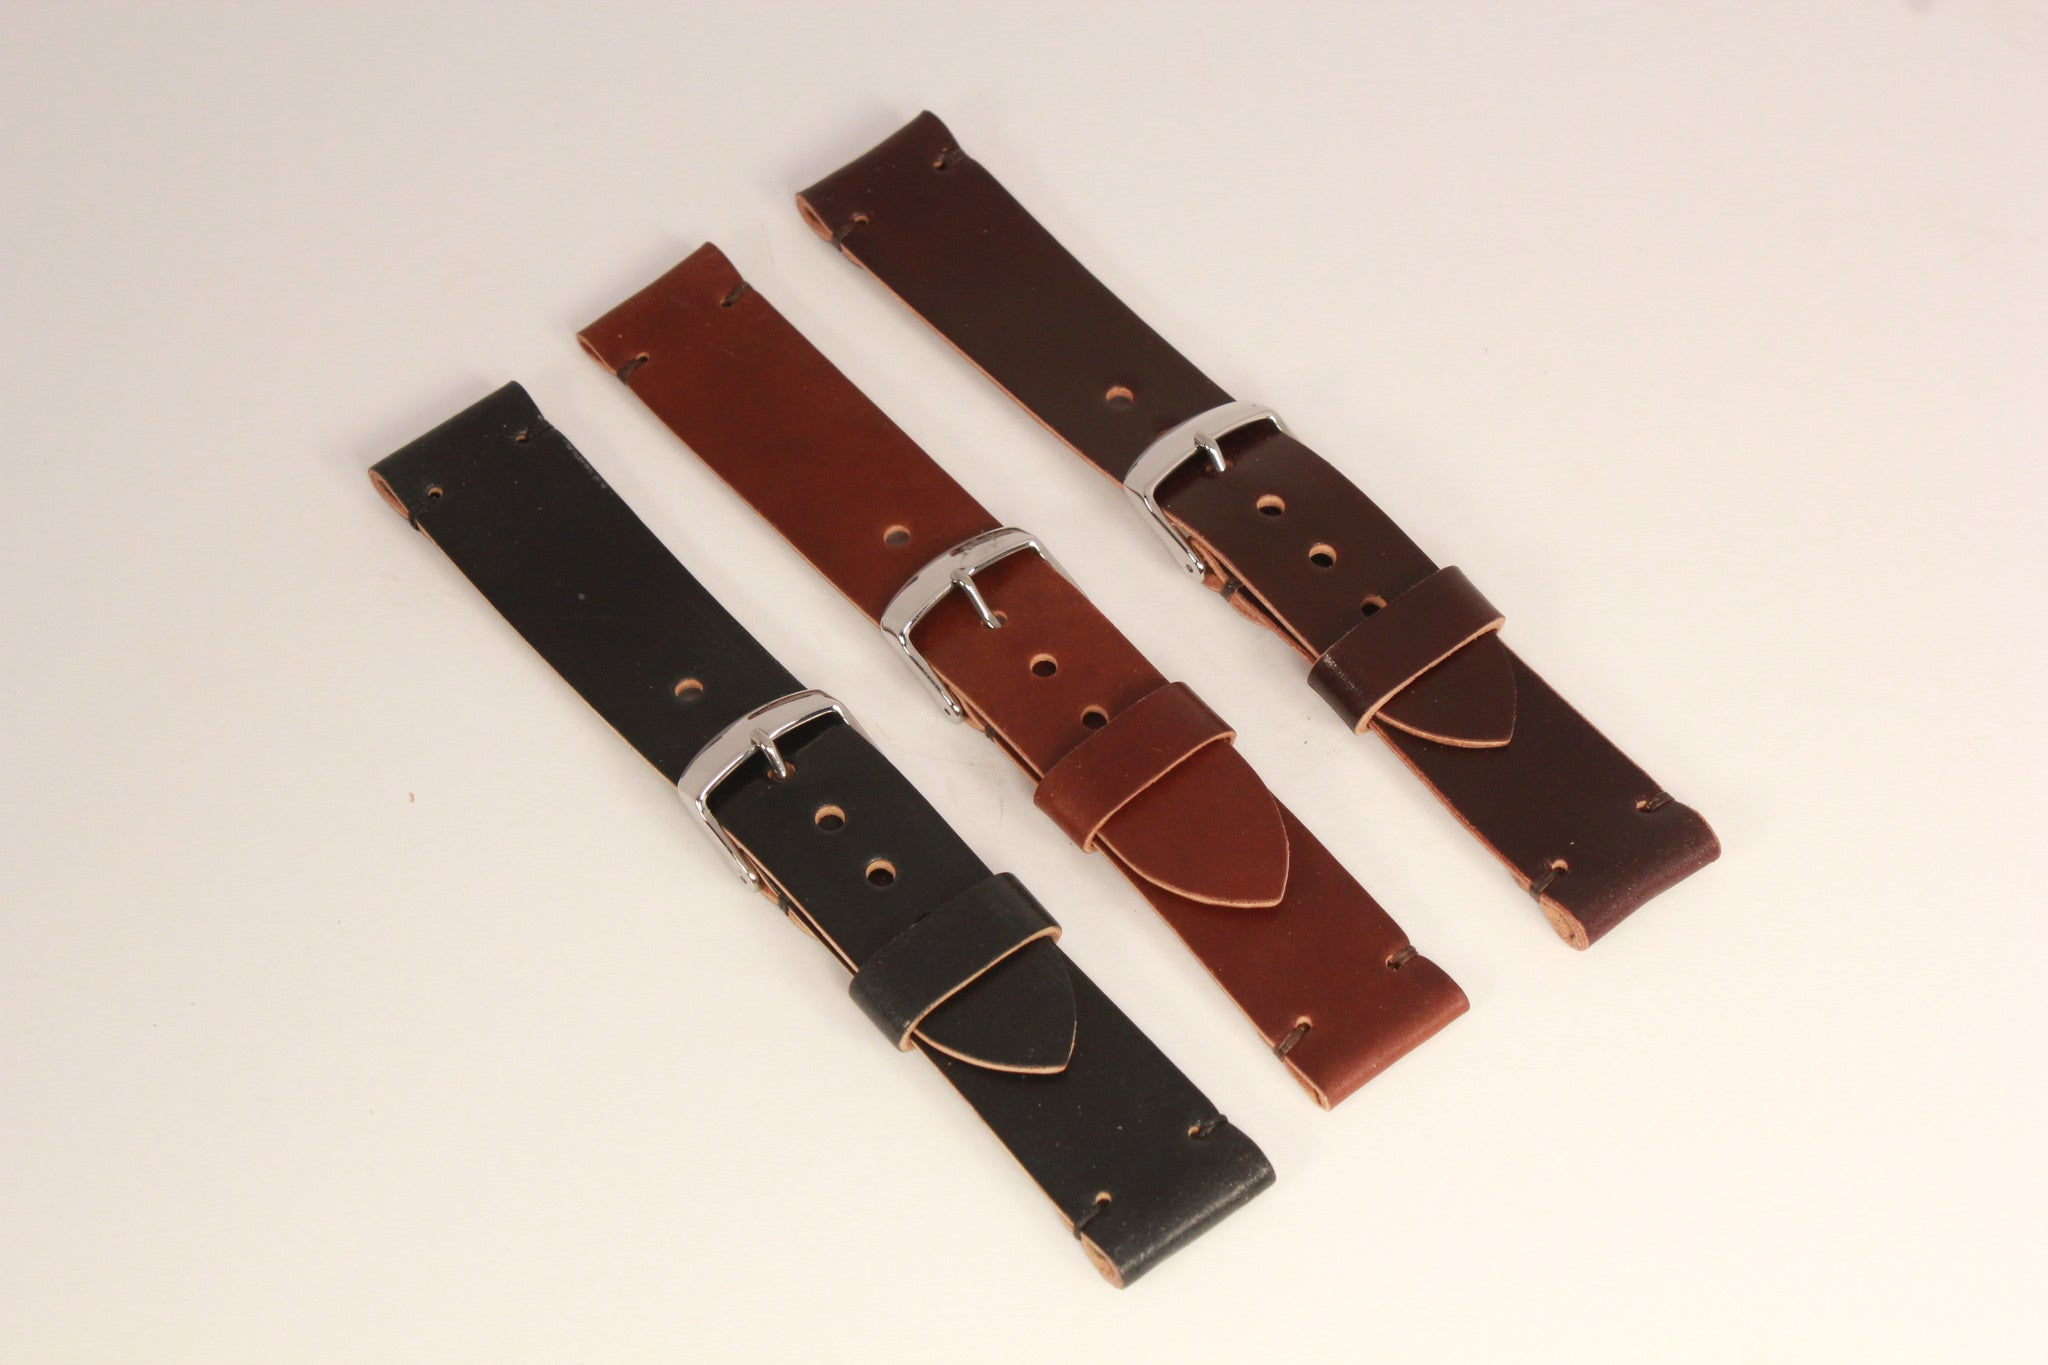 fef16bfd7 Two Piece Shell Cordovan Watch Strap   Guarded Goods   Handmade ...